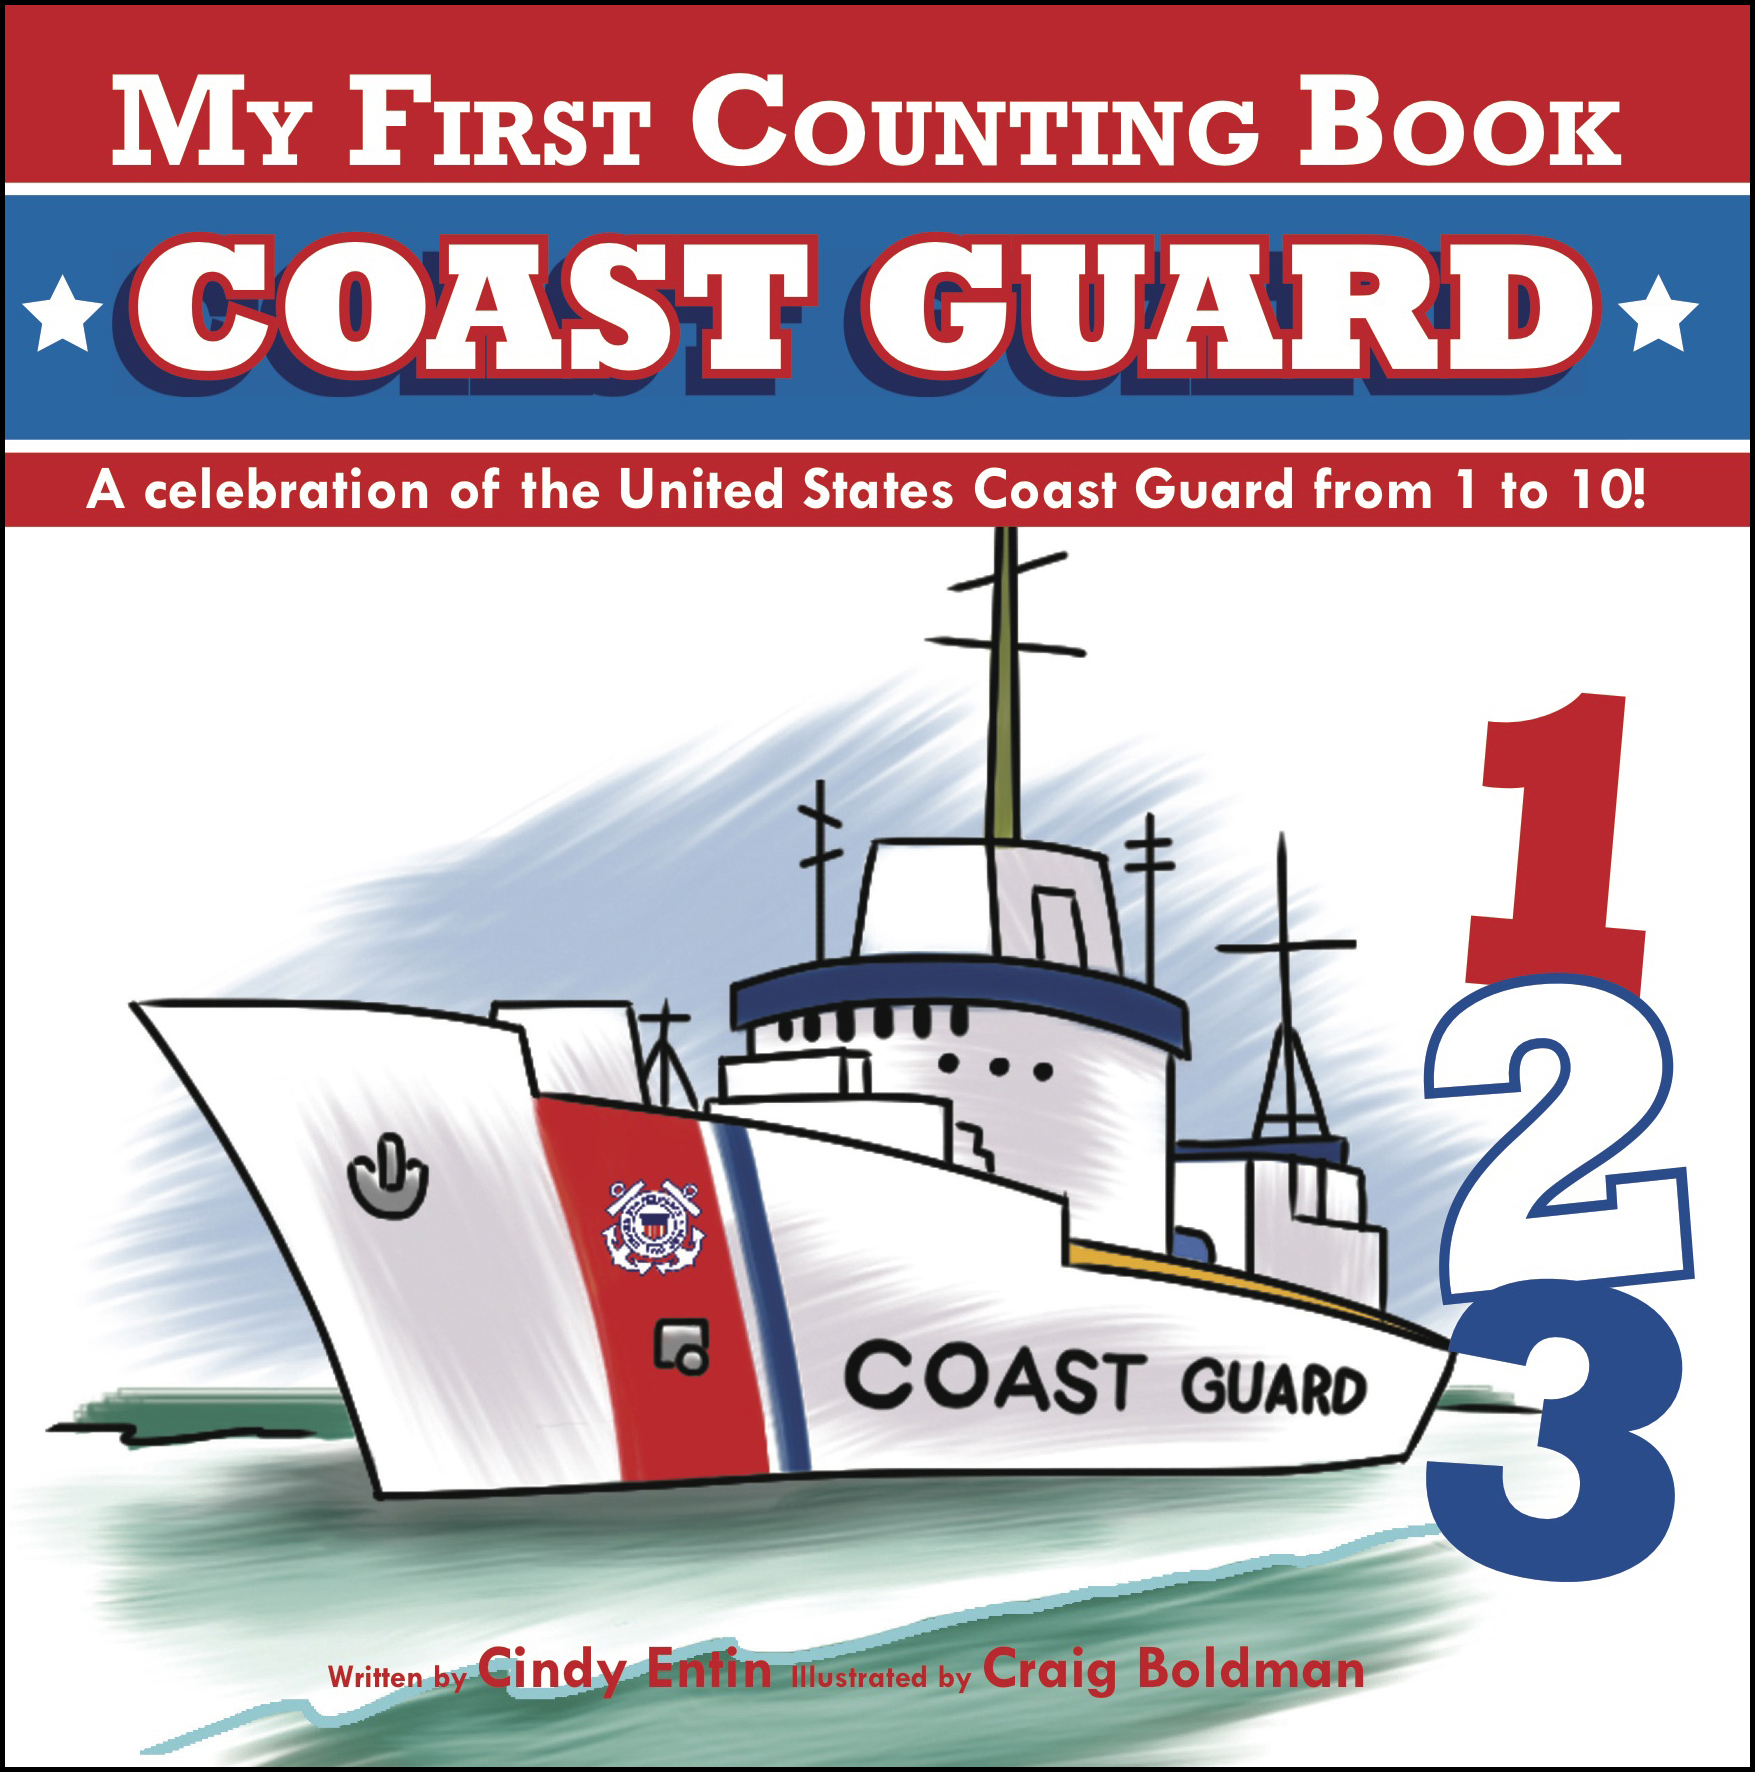 My first counting book coast guard 9781604334609 hr